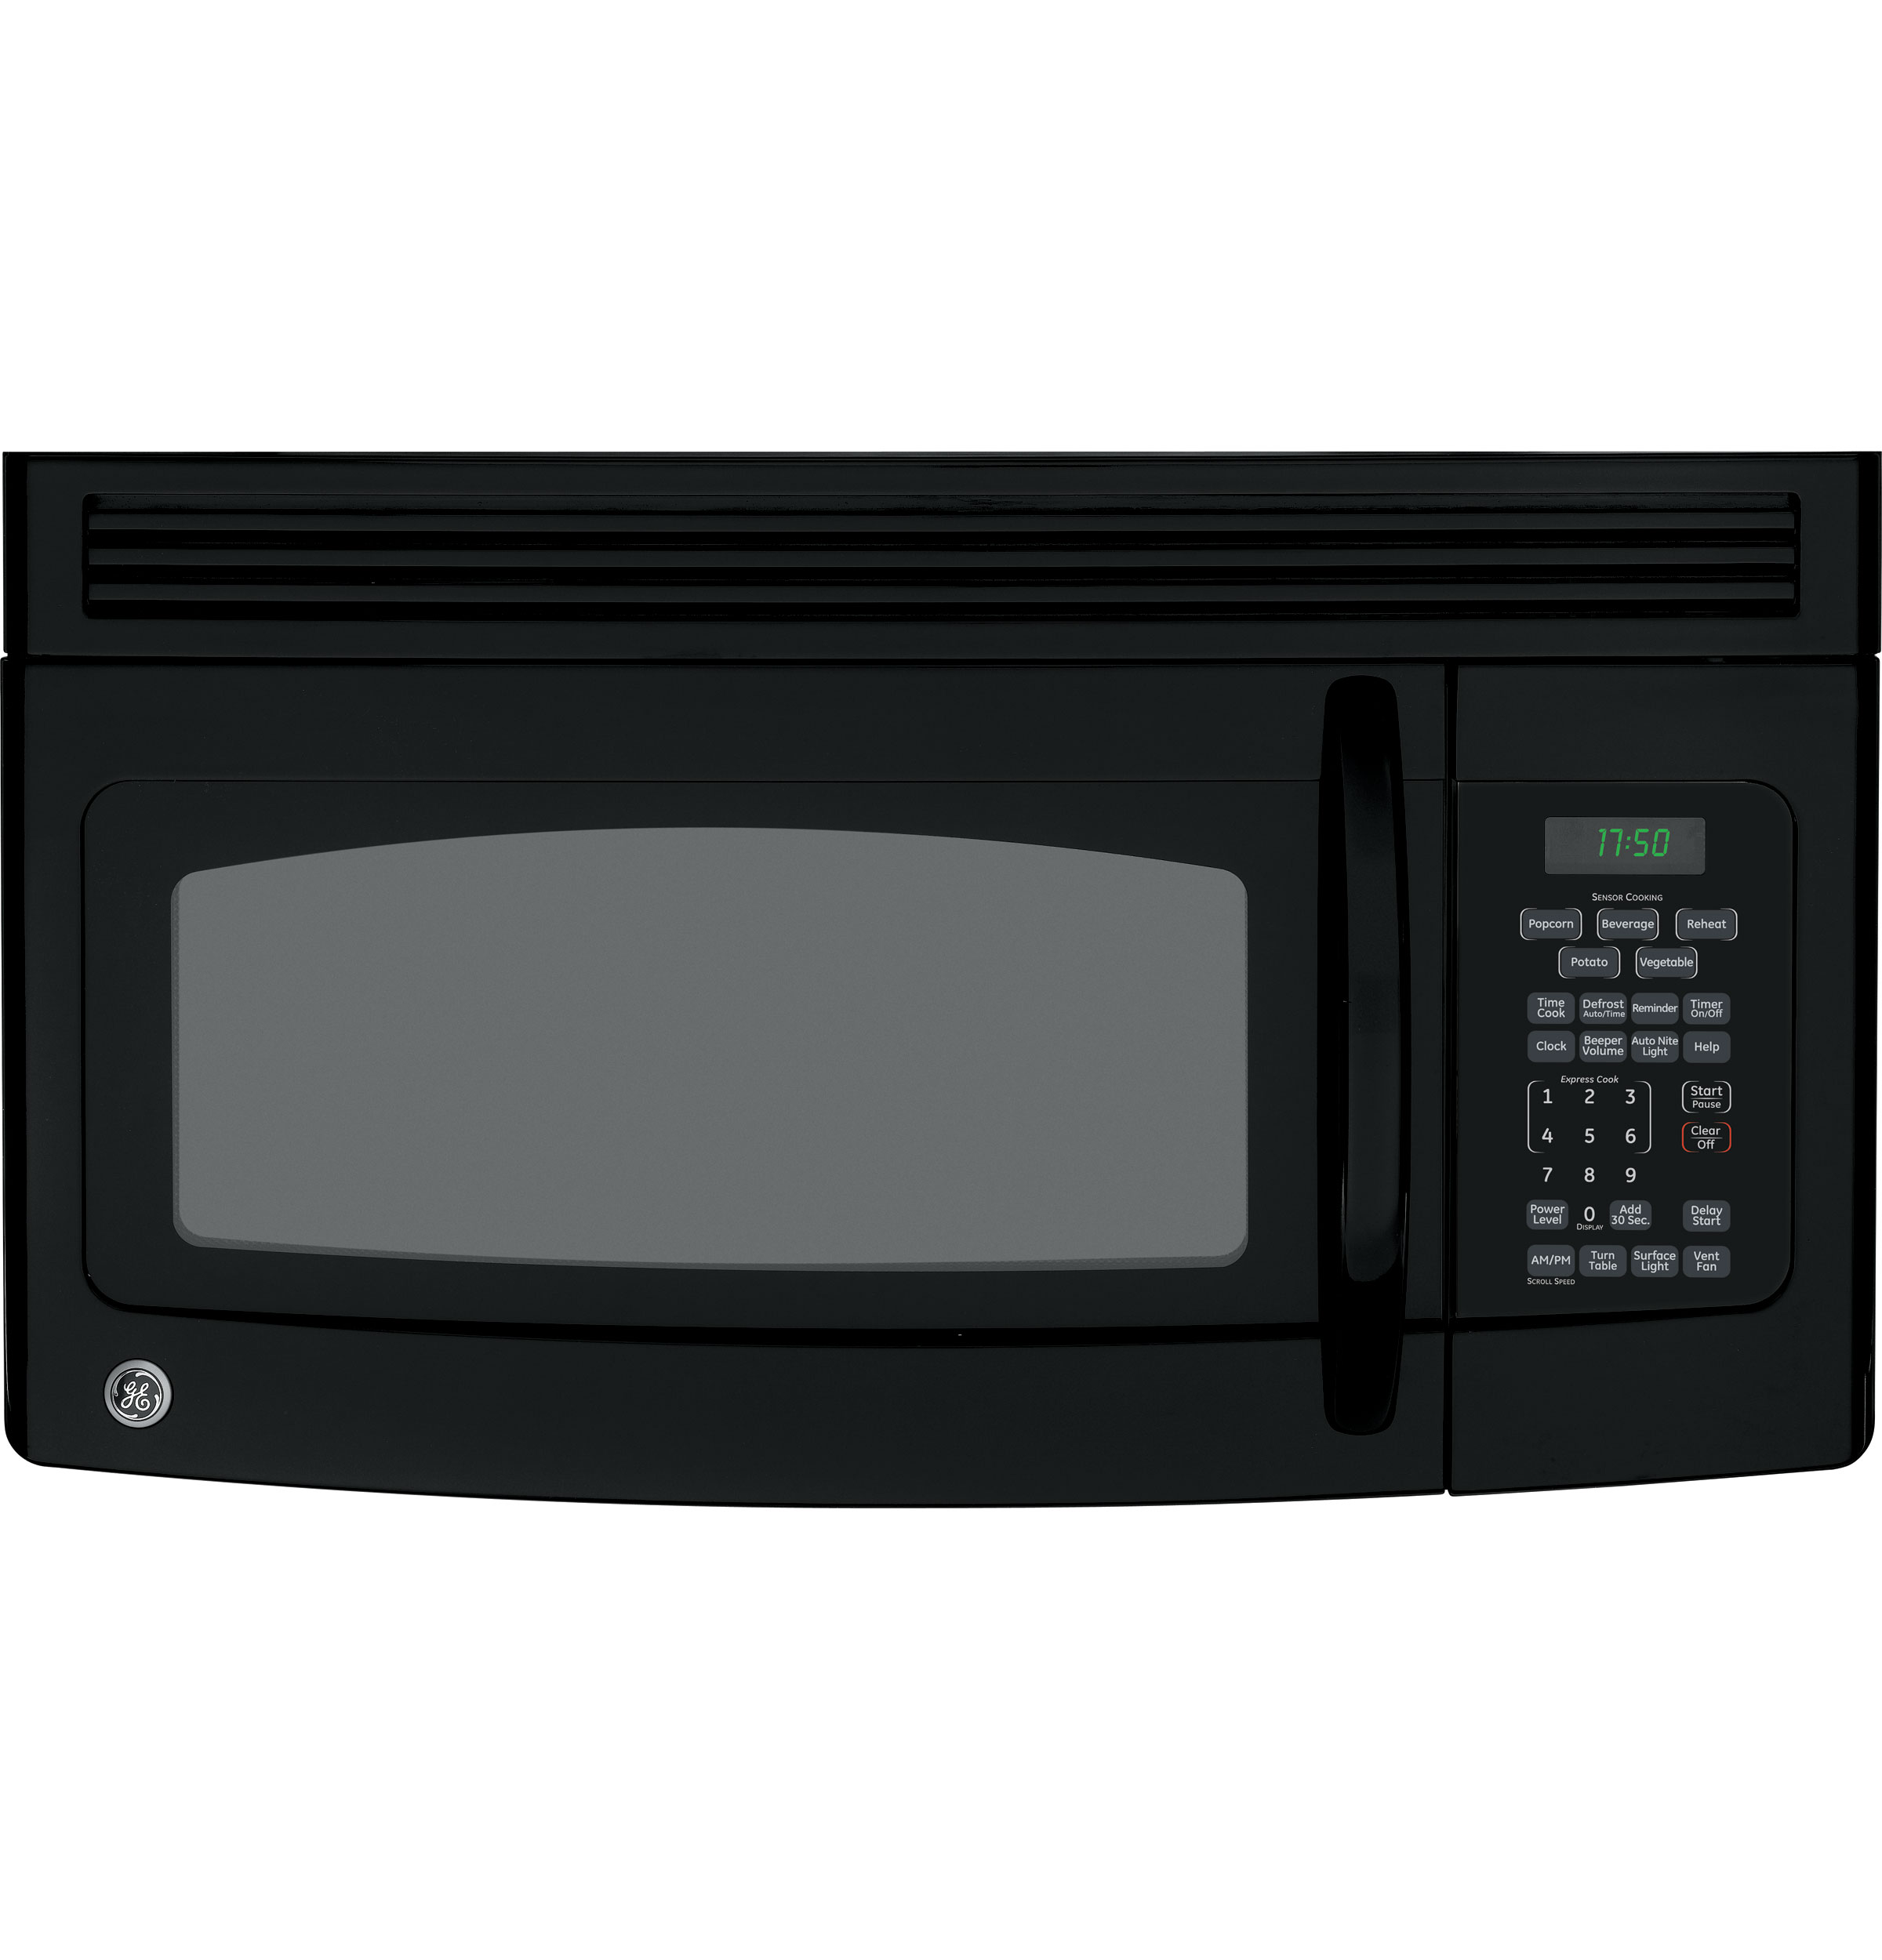 Ge Spacemaker 174 Over The Range Microwave Oven Jvm1750dmbb